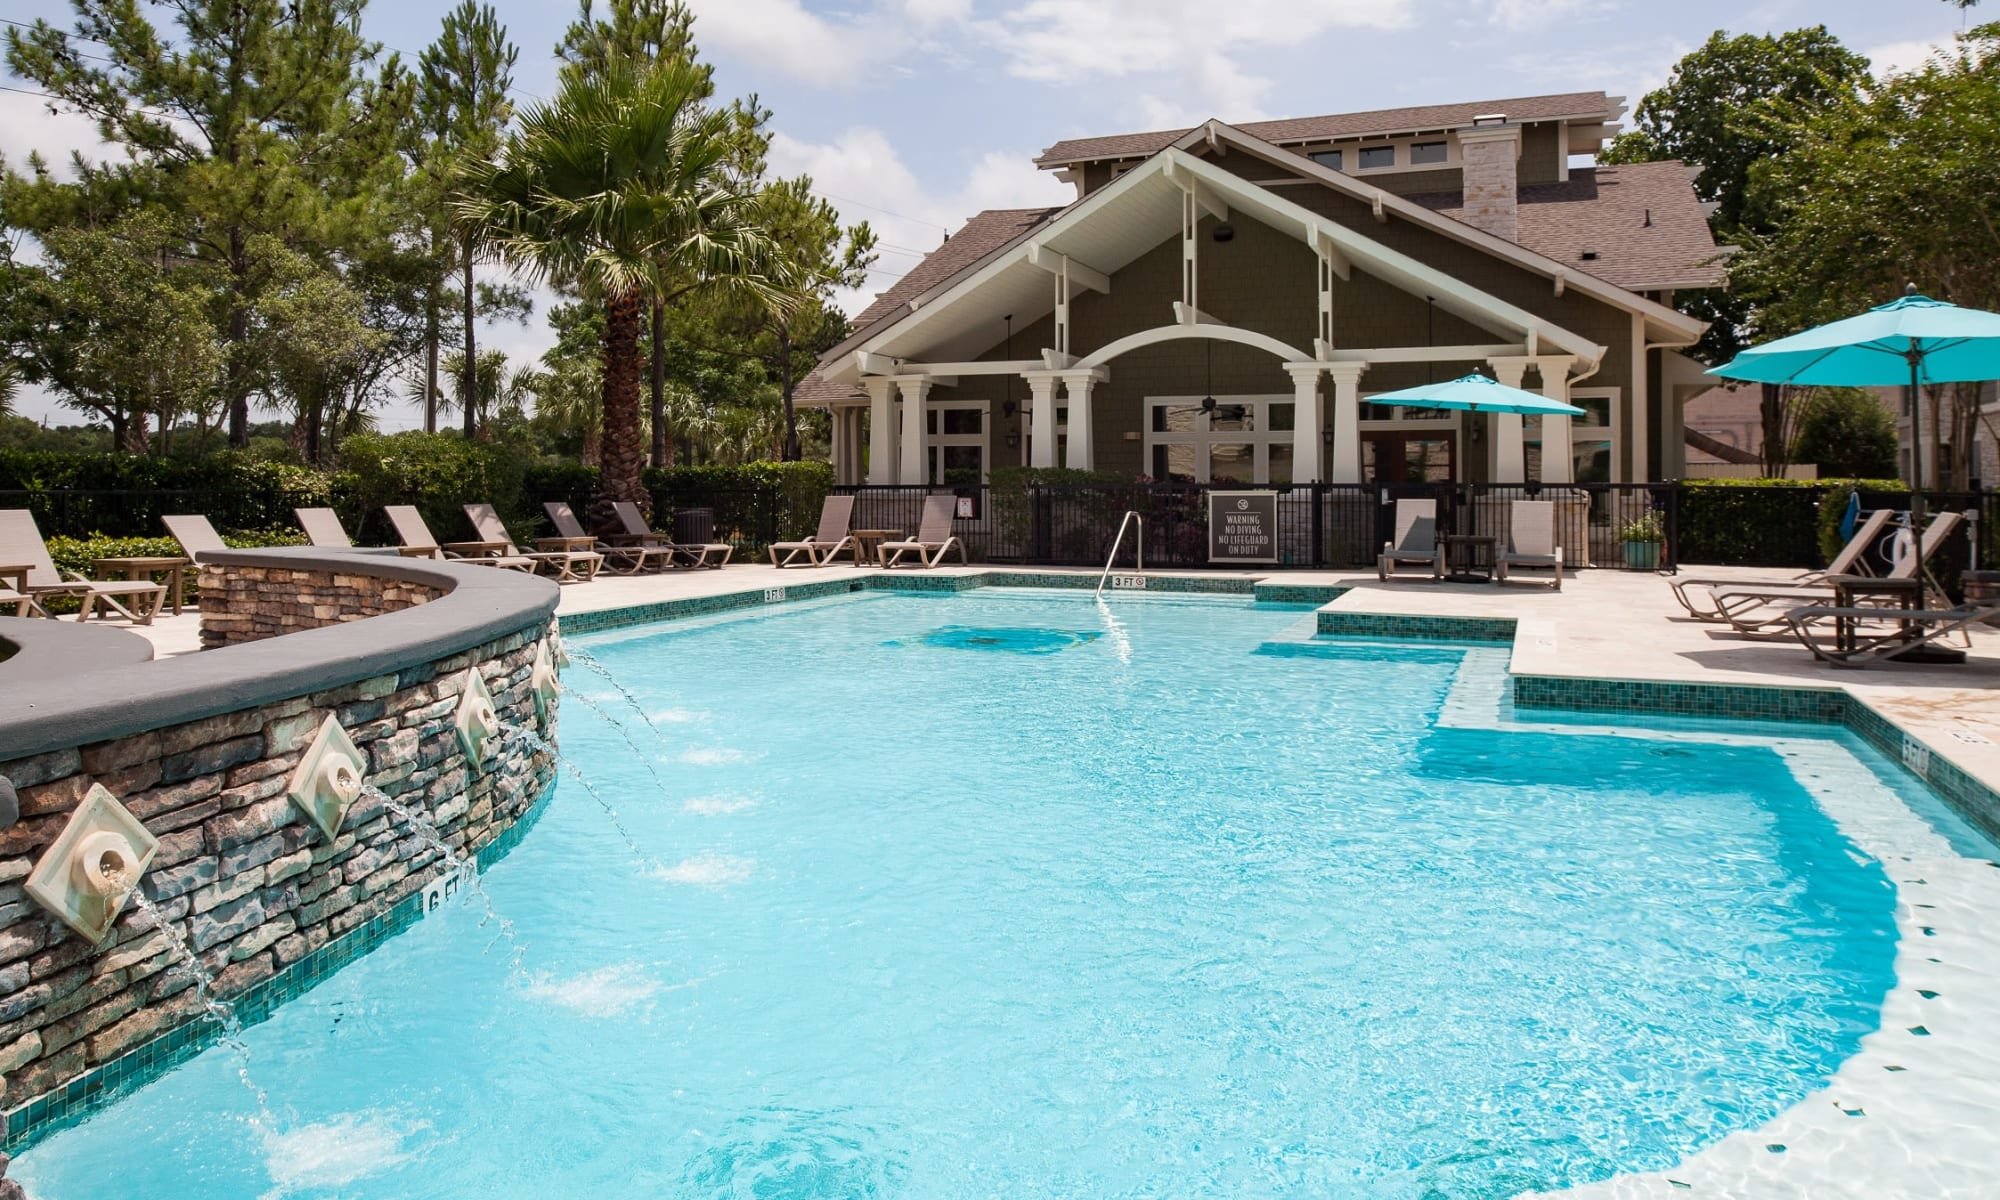 Apartments at Lakefront Villas in Houston, Texas